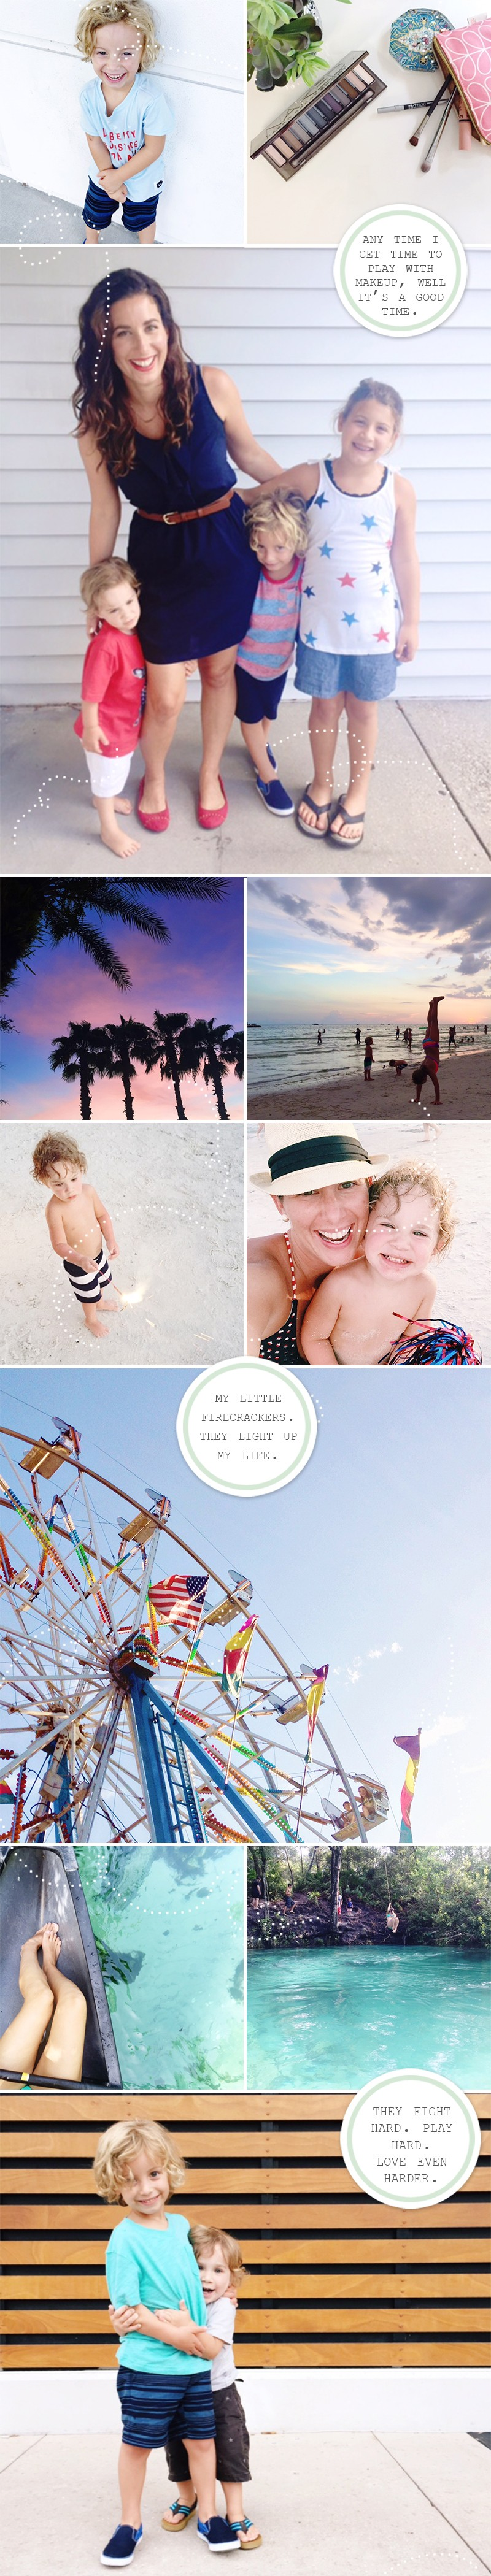 Life lately in photos and a weekly linkup